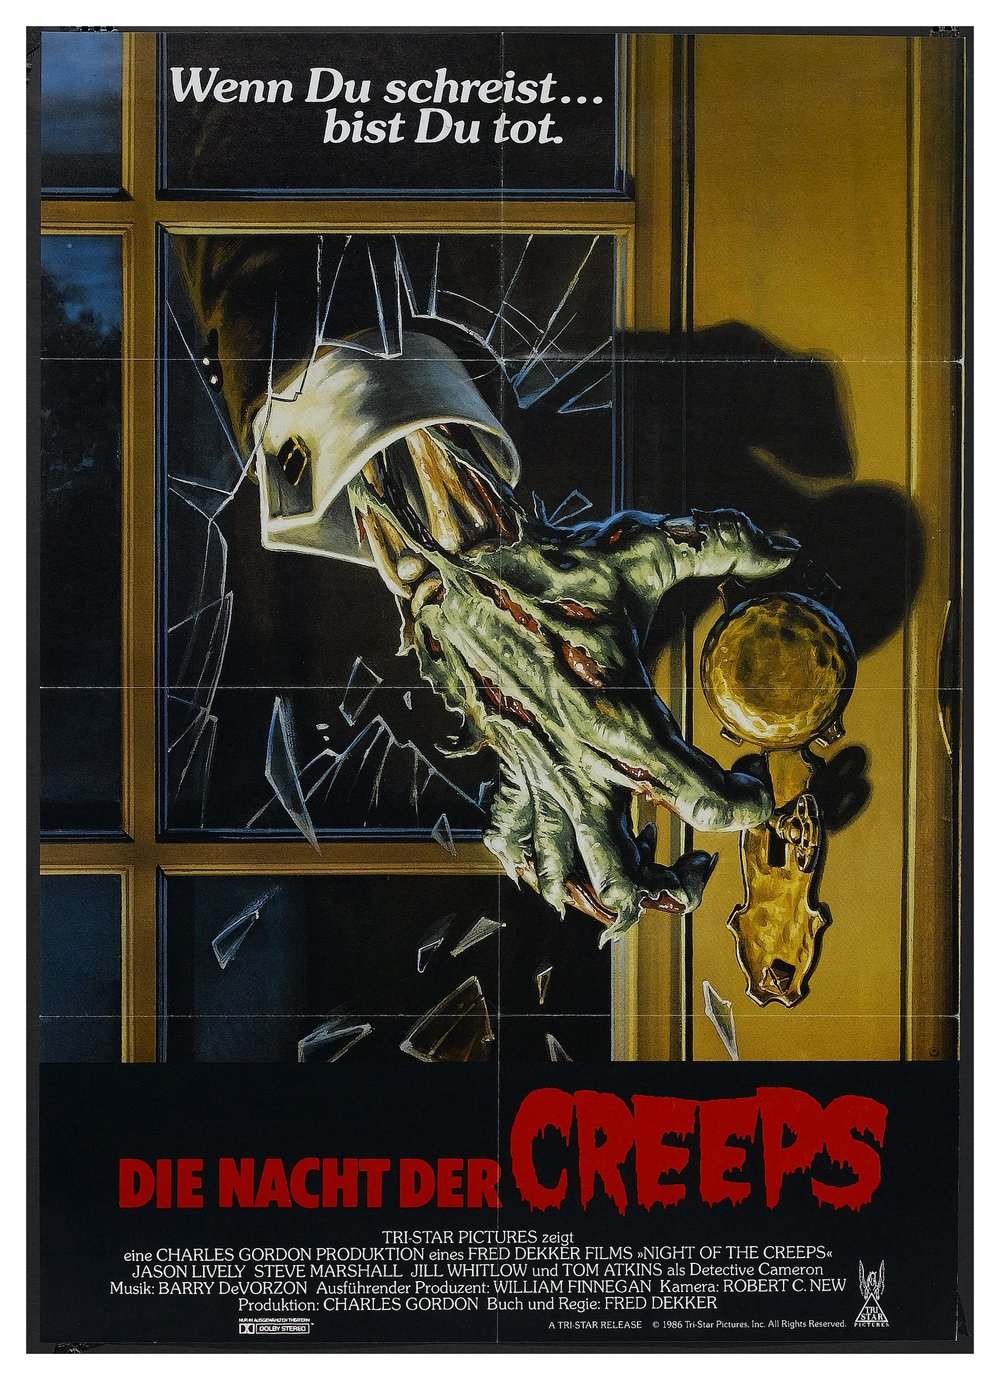 night_of_the_creeps_poster_01.jpg